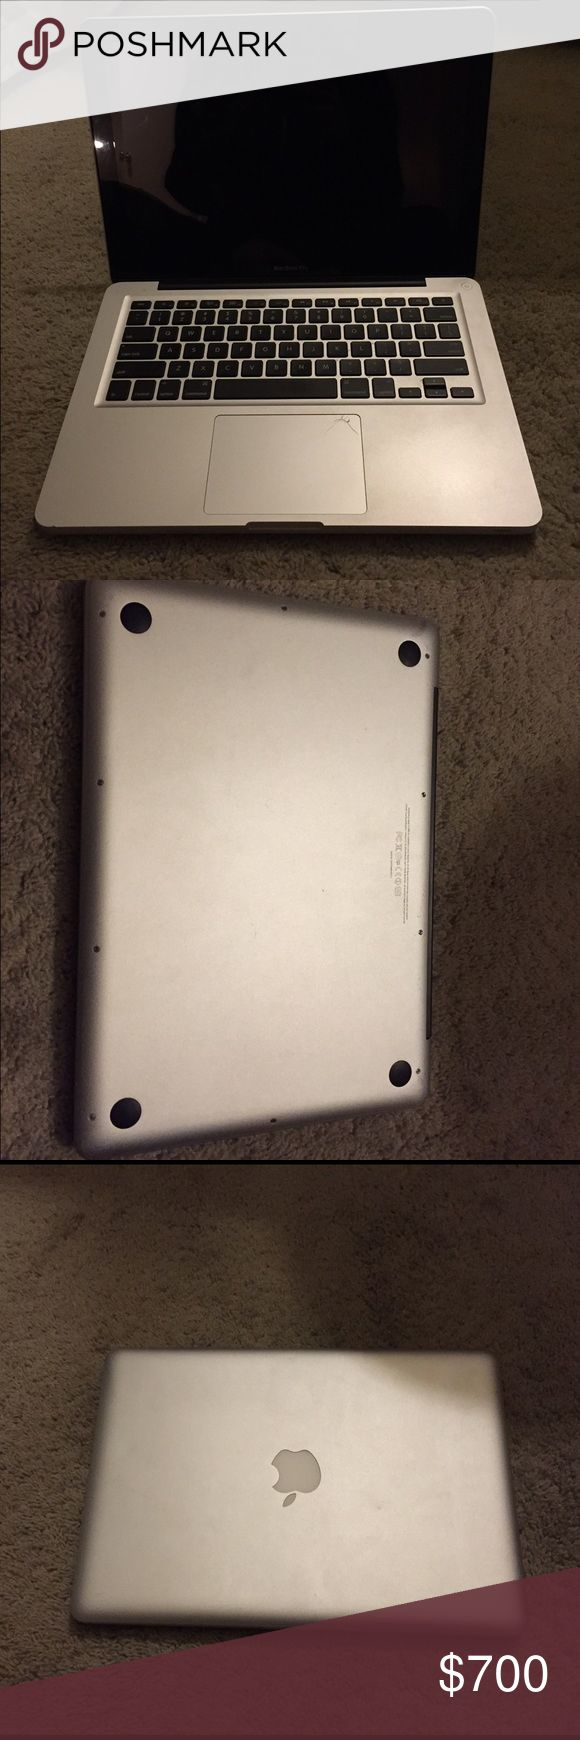 2011 MacBook Pro 2011 MacBook Pro, cracked mousepad, good condition apple Other